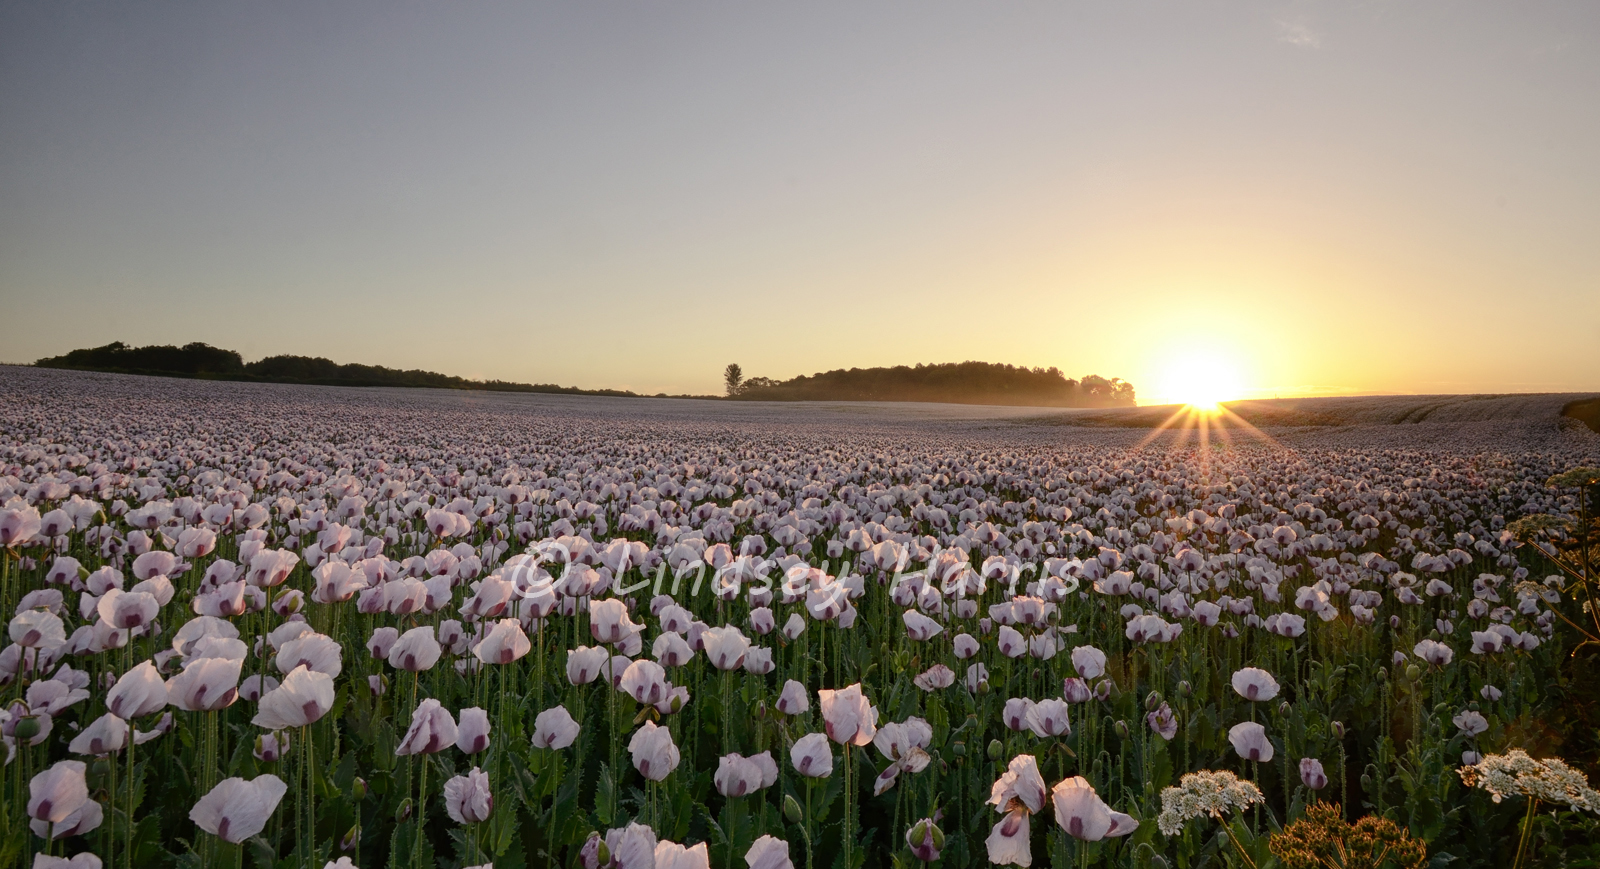 Dorset Poppy Fields at Sunrise, 2015